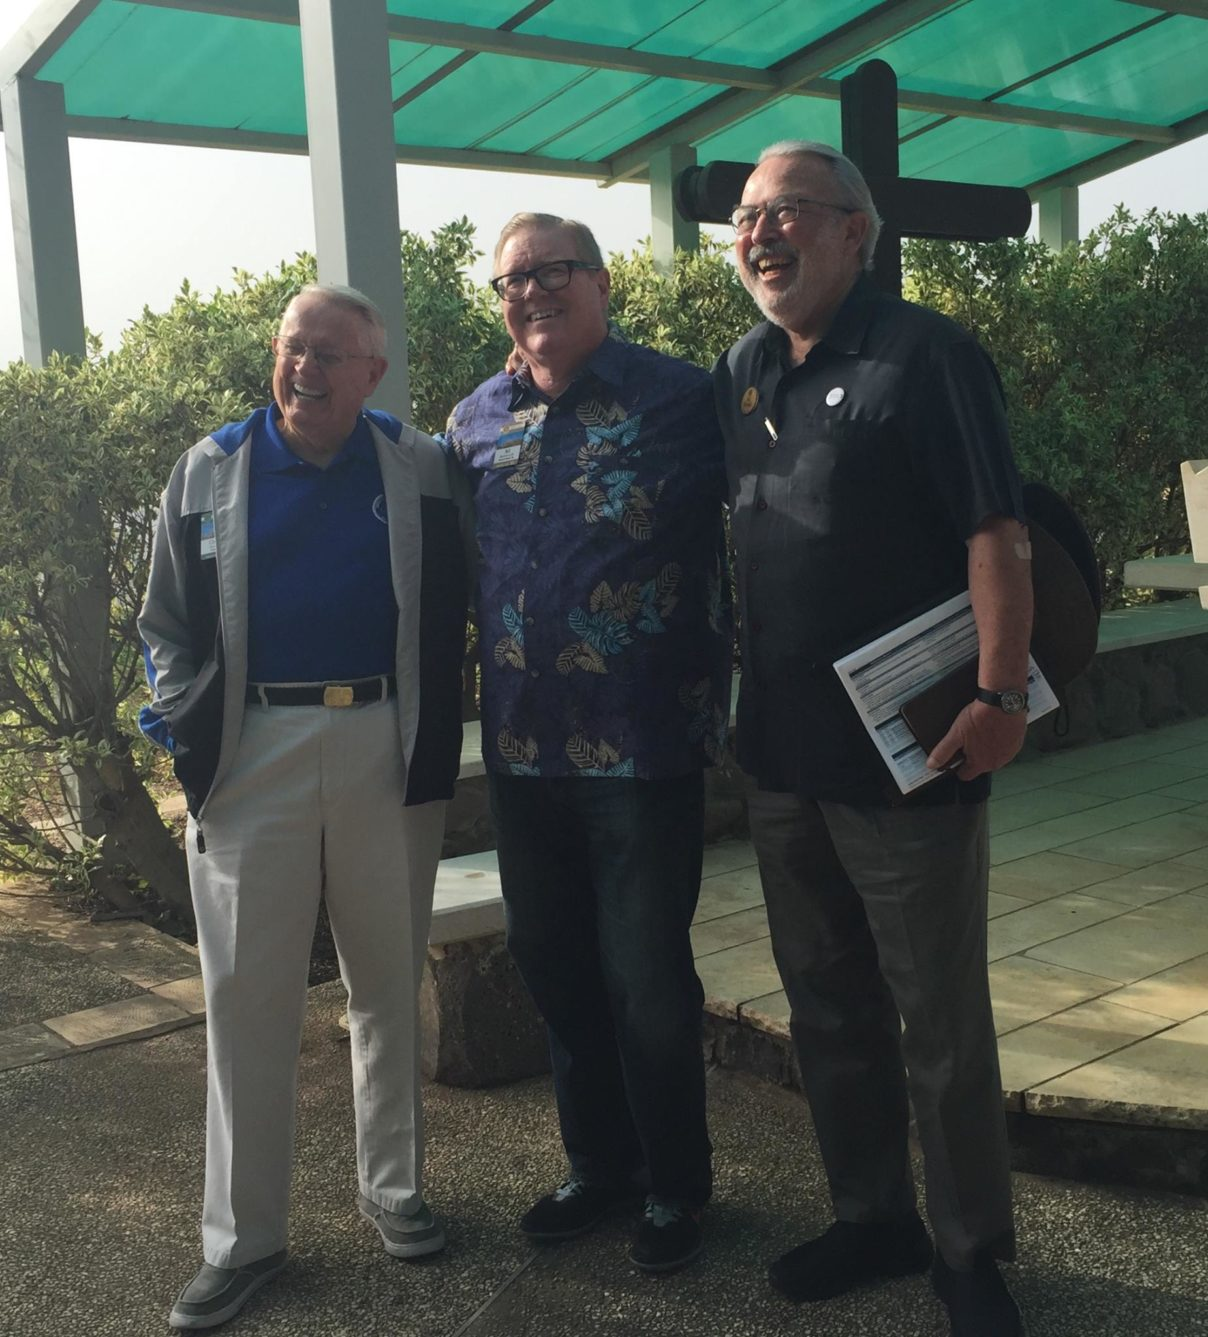 Three of my favorite people standing together before worshipping on the Mount of Beatitudes.